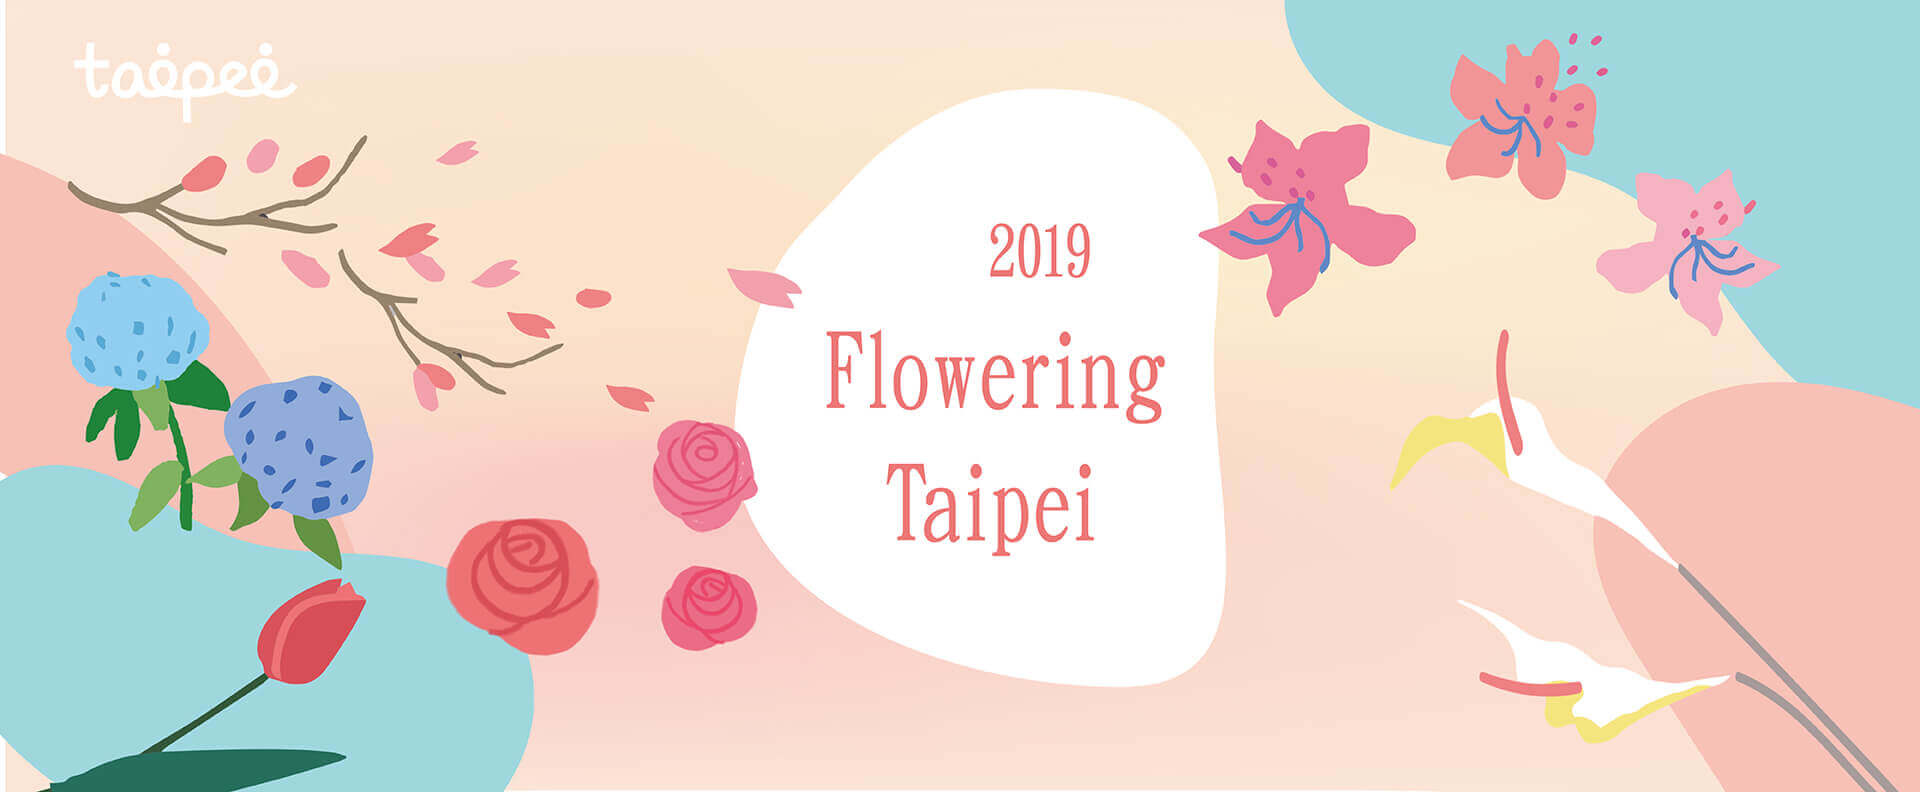 2019 Flowering Taipei(Open Window)